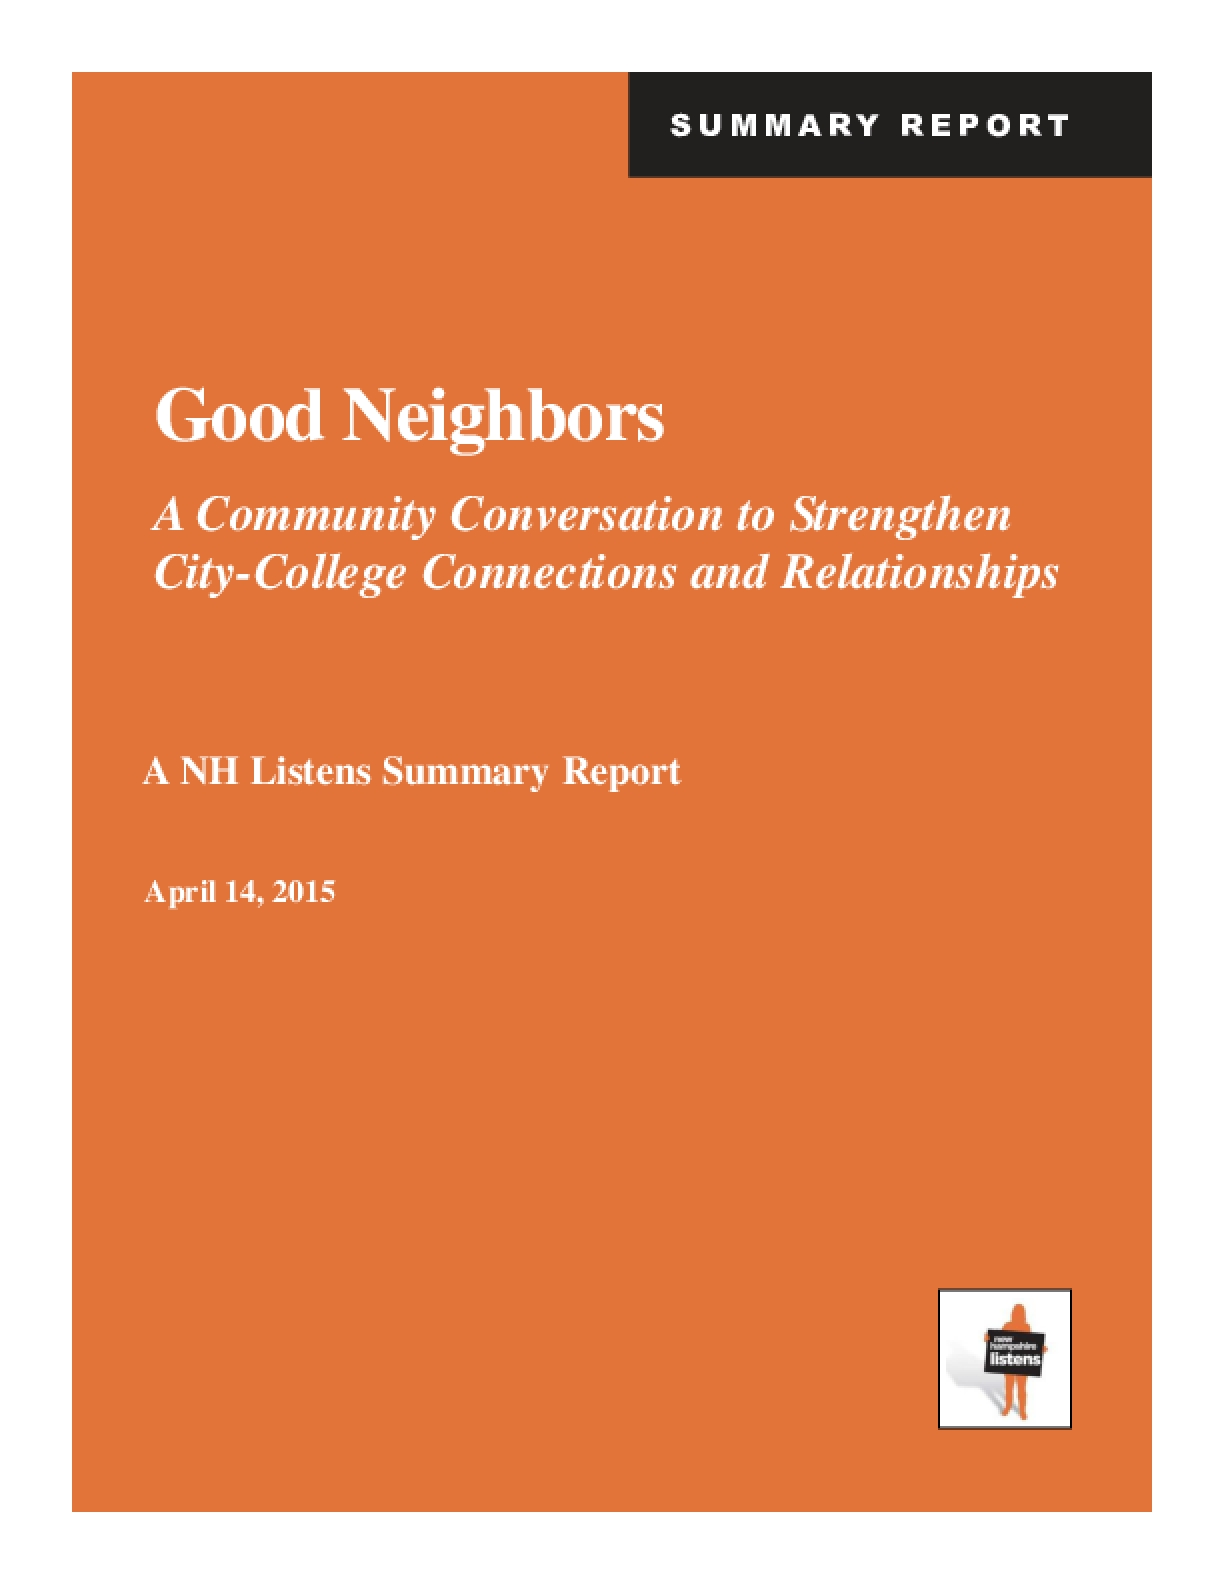 Good Neighbors: A Community Conversation to Strengthen City-College Connections and Relationships